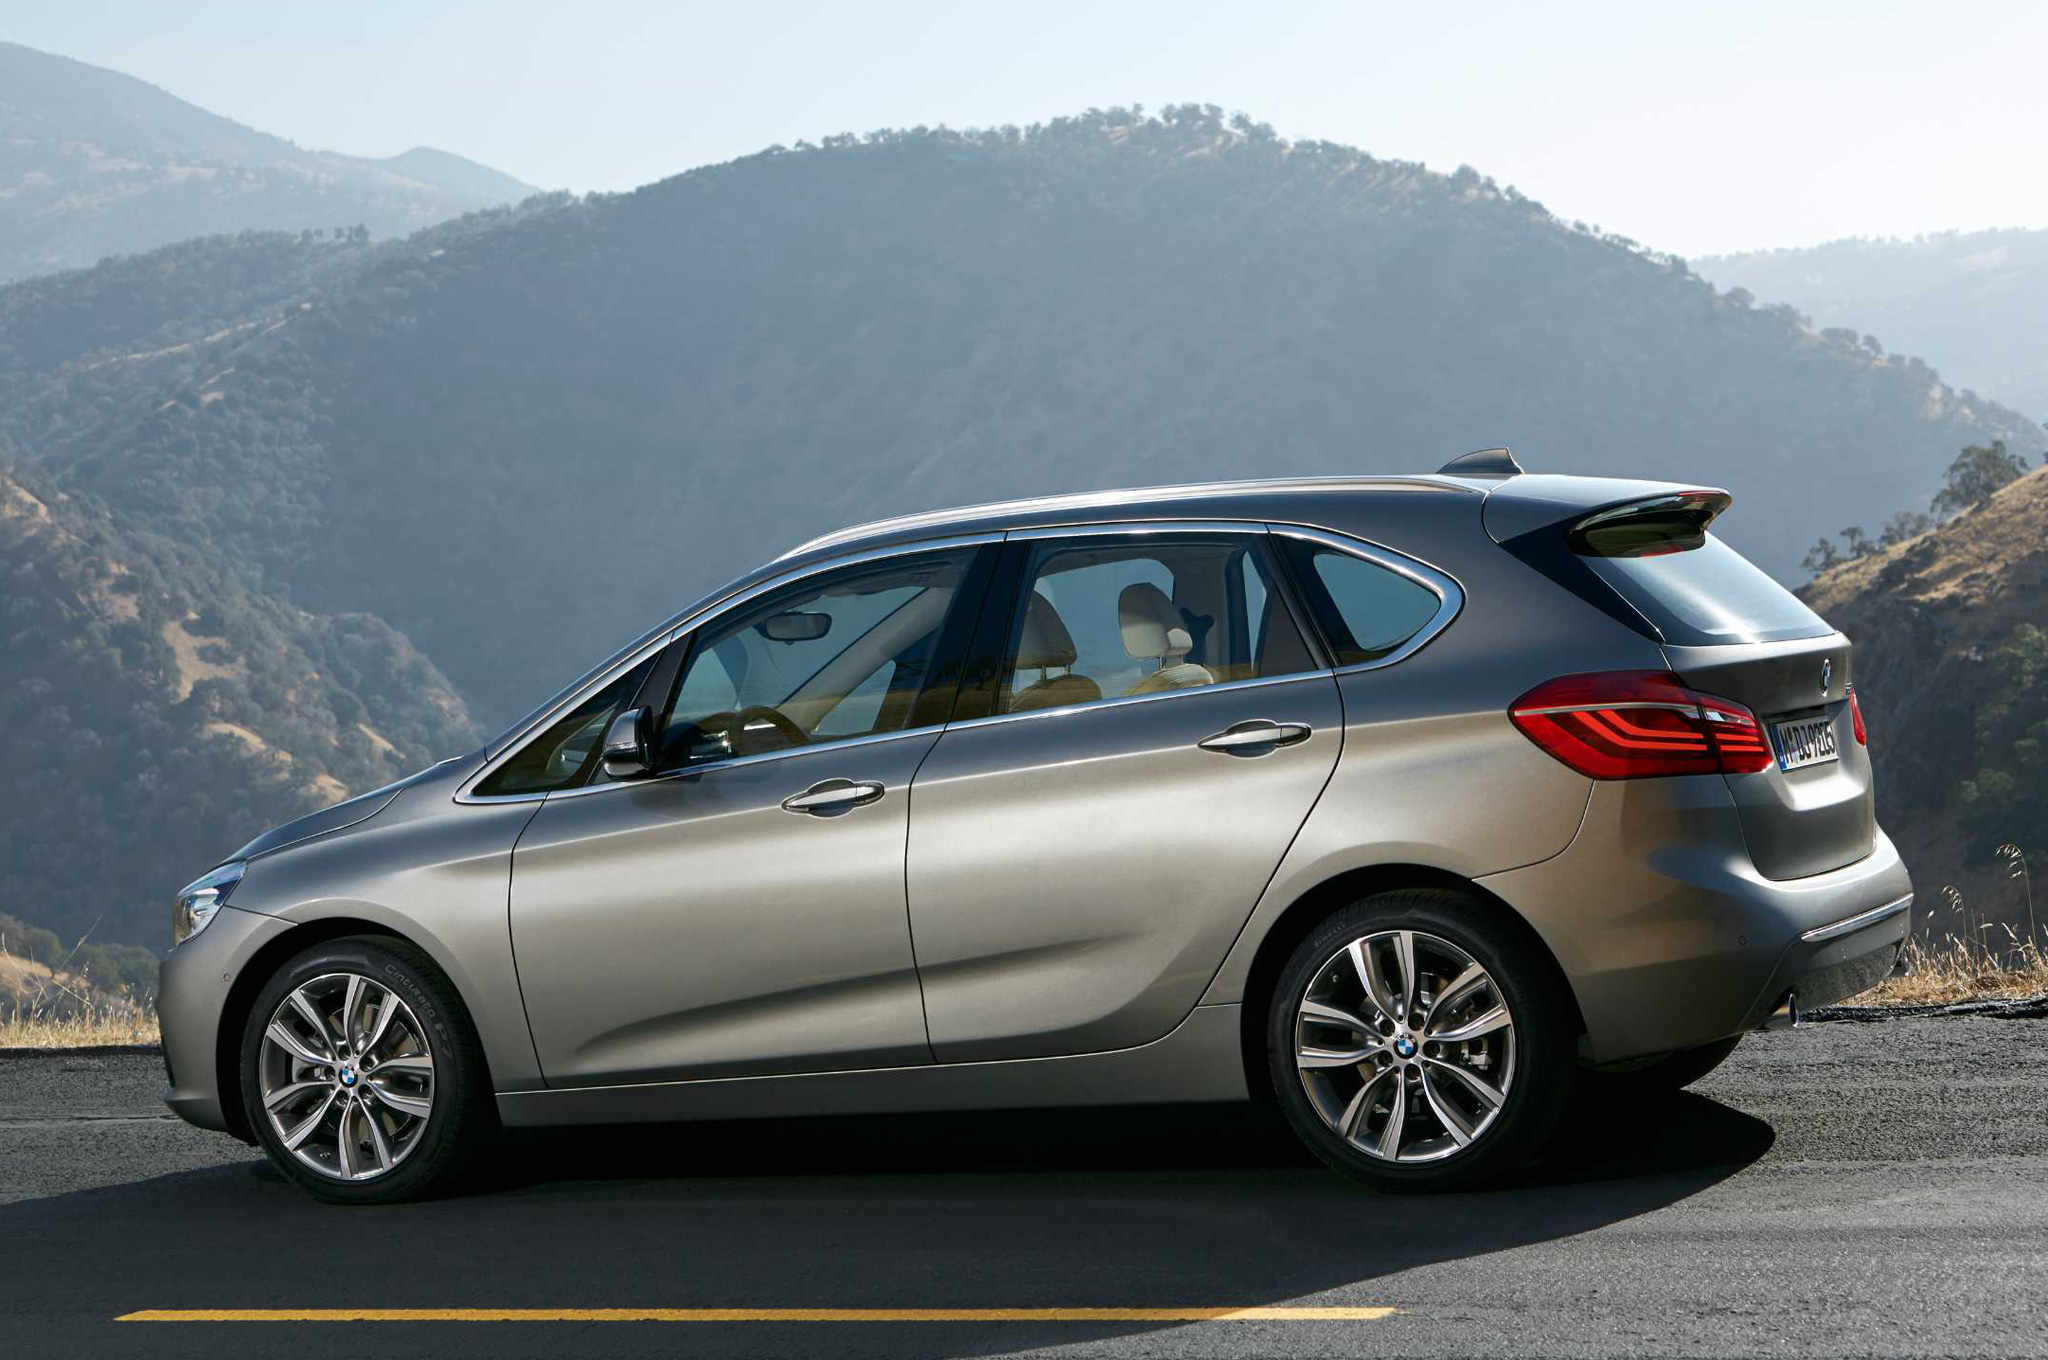 Bmw 2 sarja active tourer